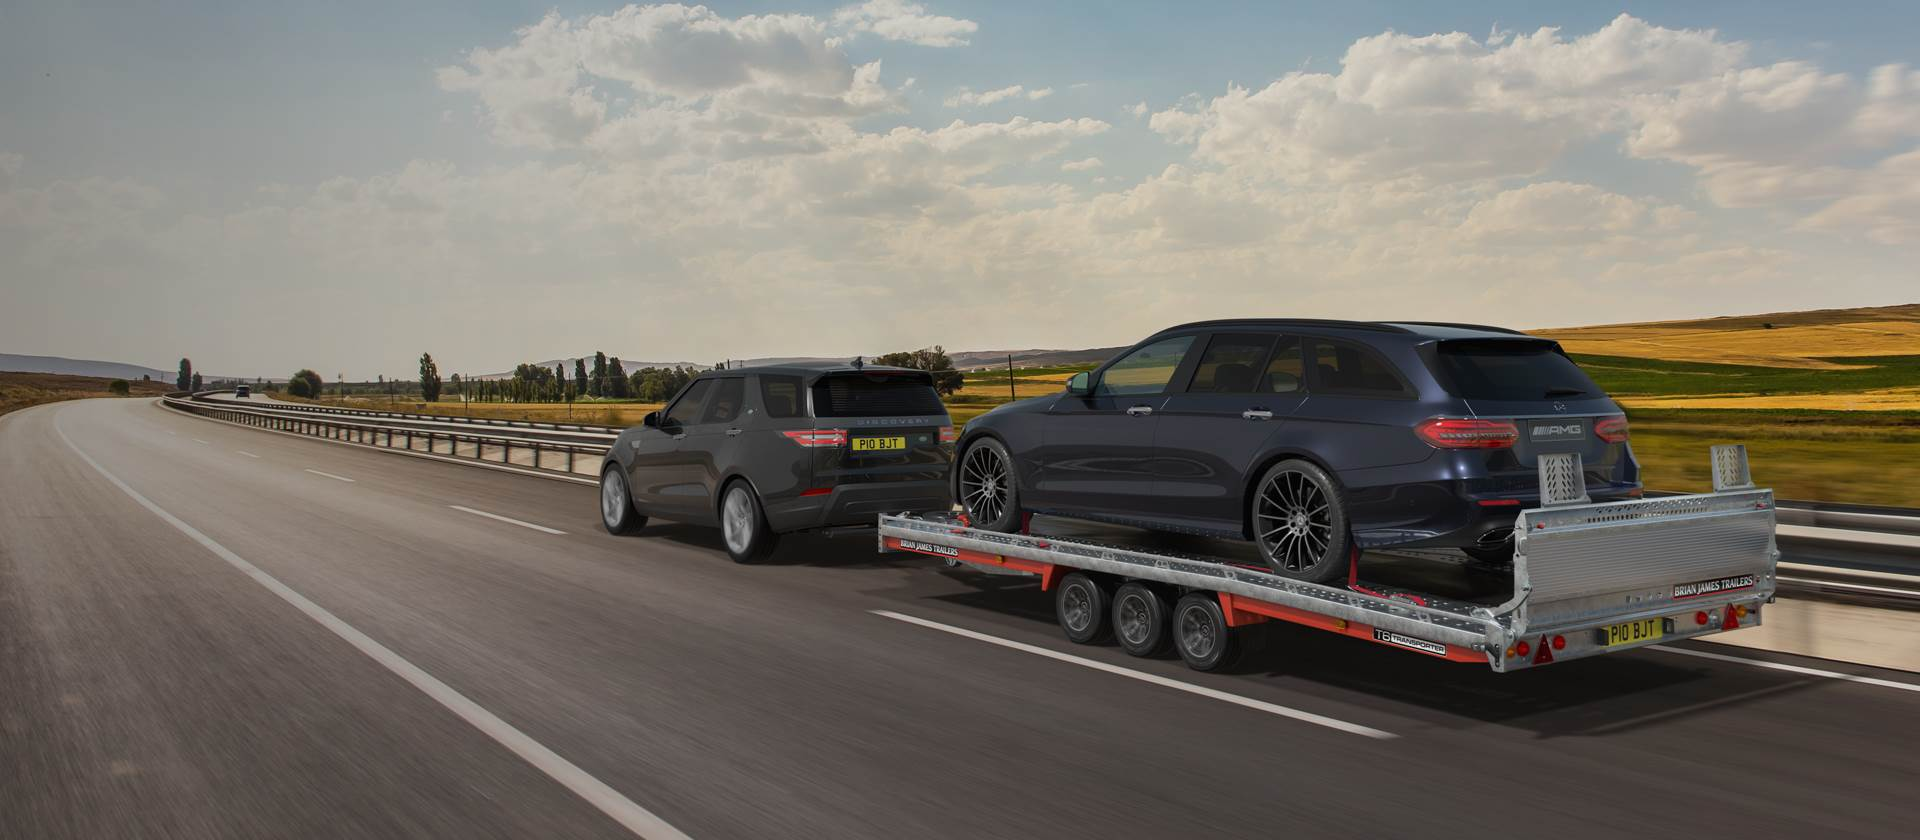 Market leading professional car transporters